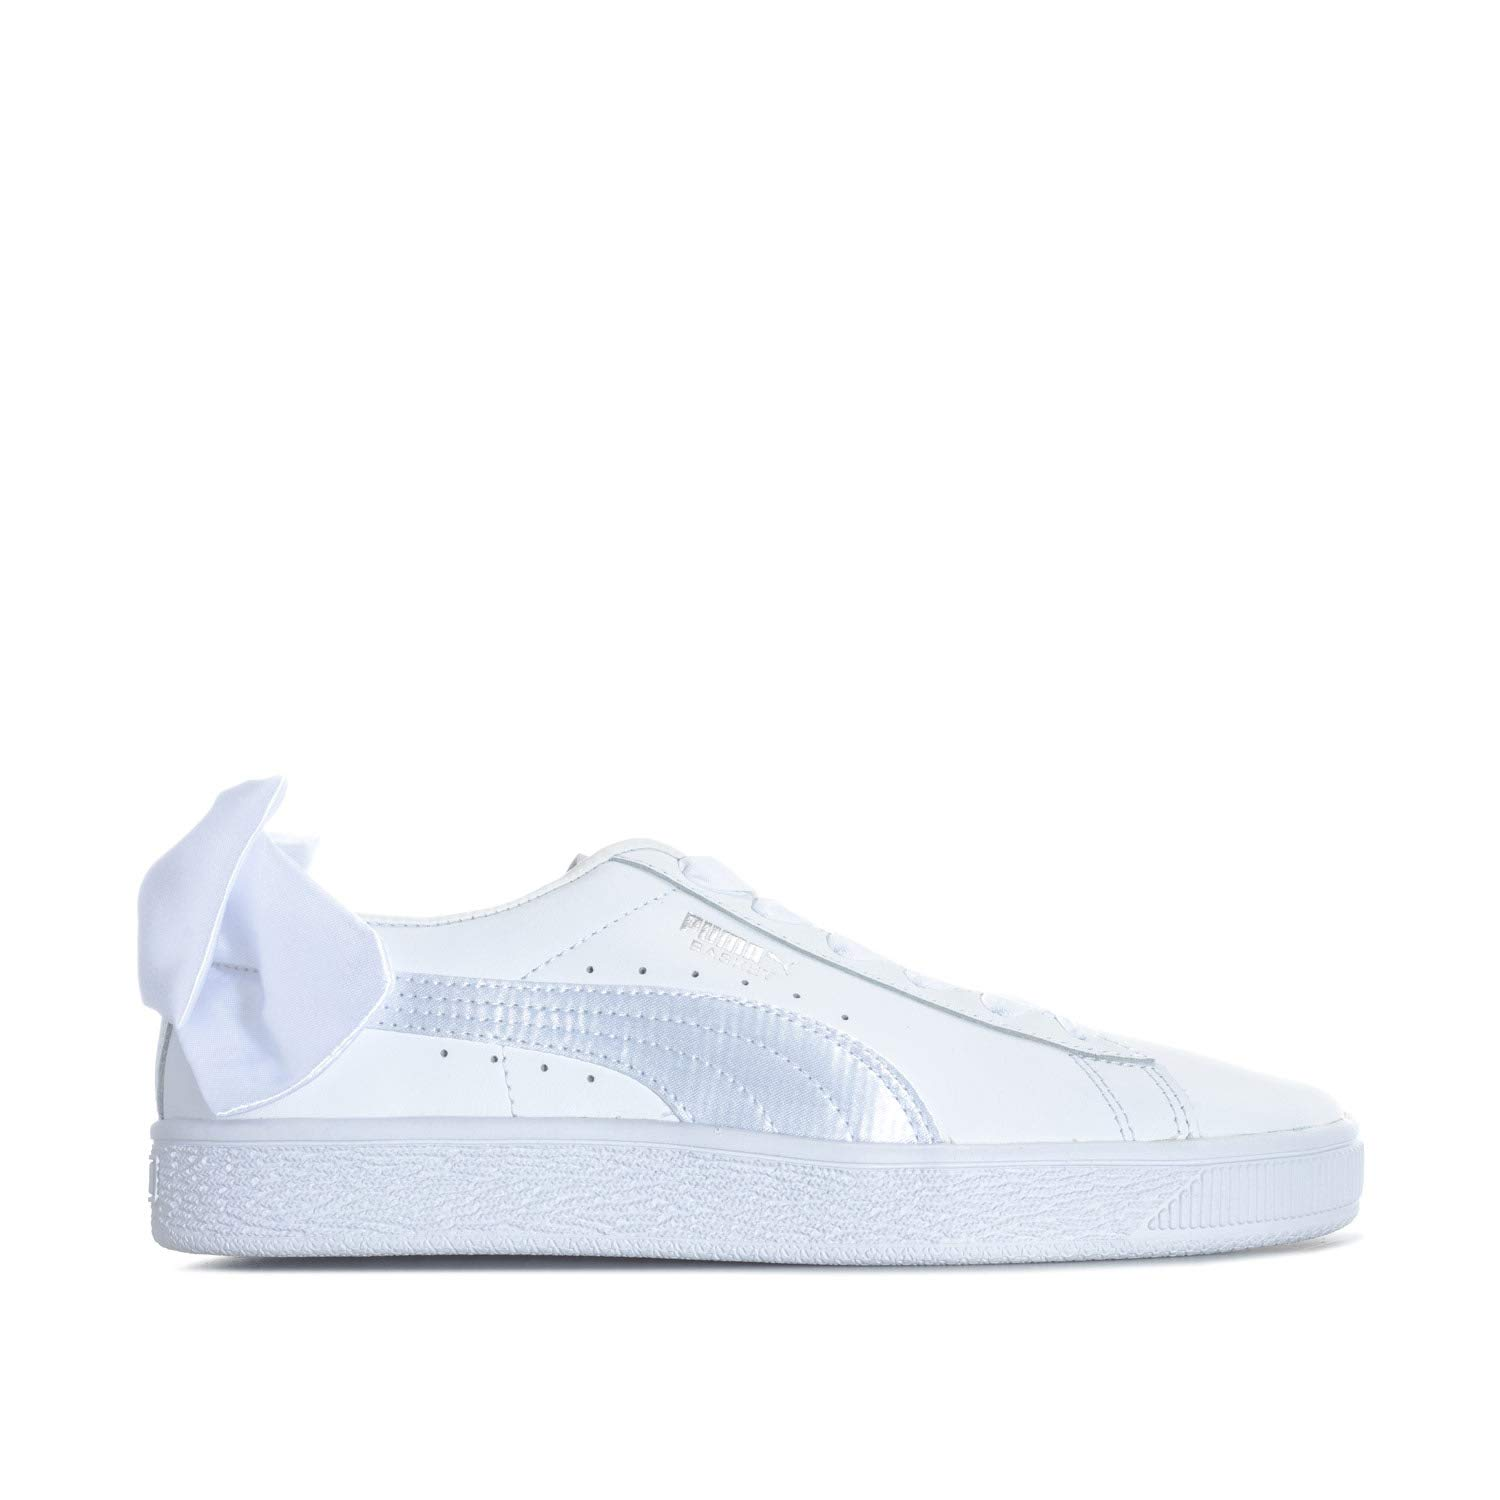 Puma Junior Girls Basket Bow Trainers in White- Elasticated Ribbon Laces-  Bow  Amazon.co.uk  Shoes   Bags b06e24789